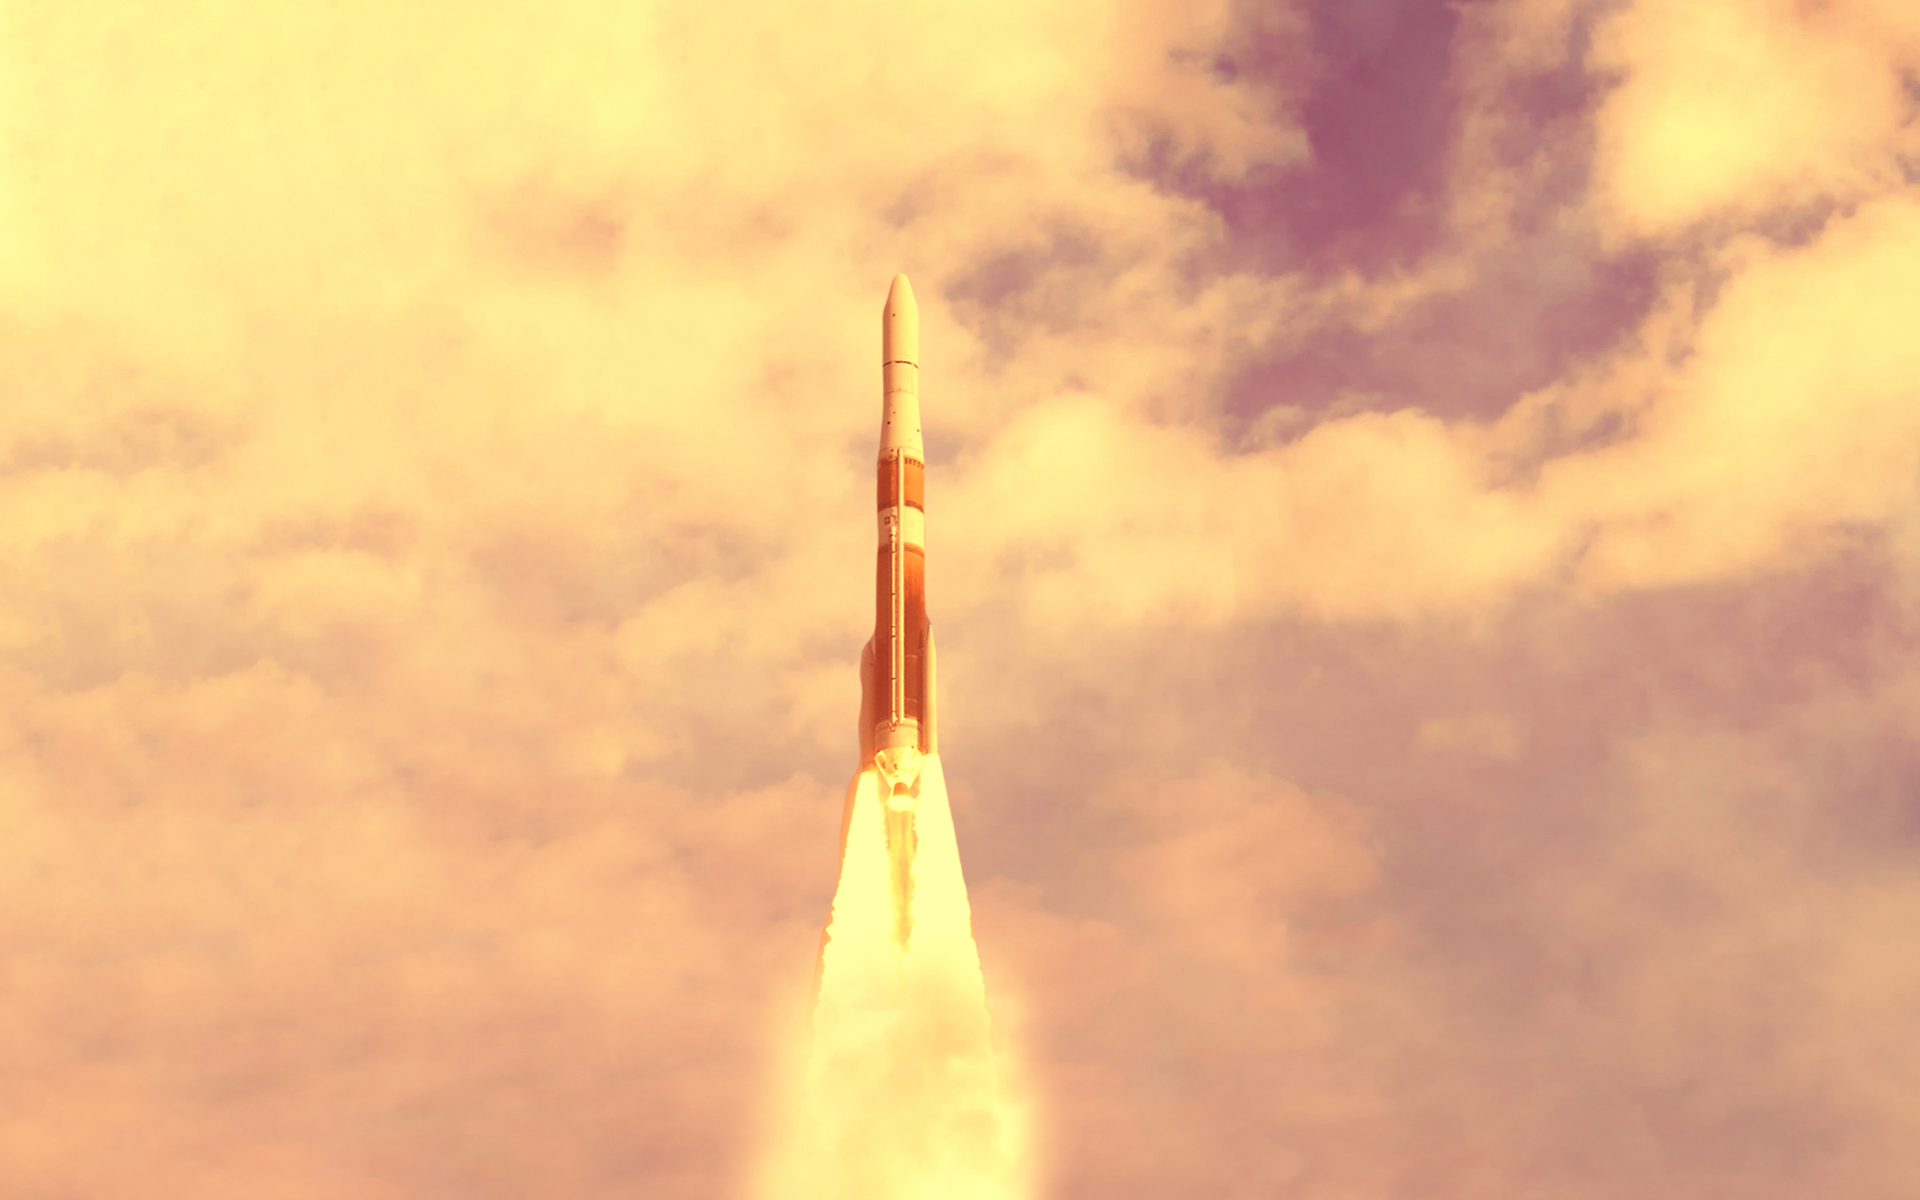 bitcoin price bull market rocket